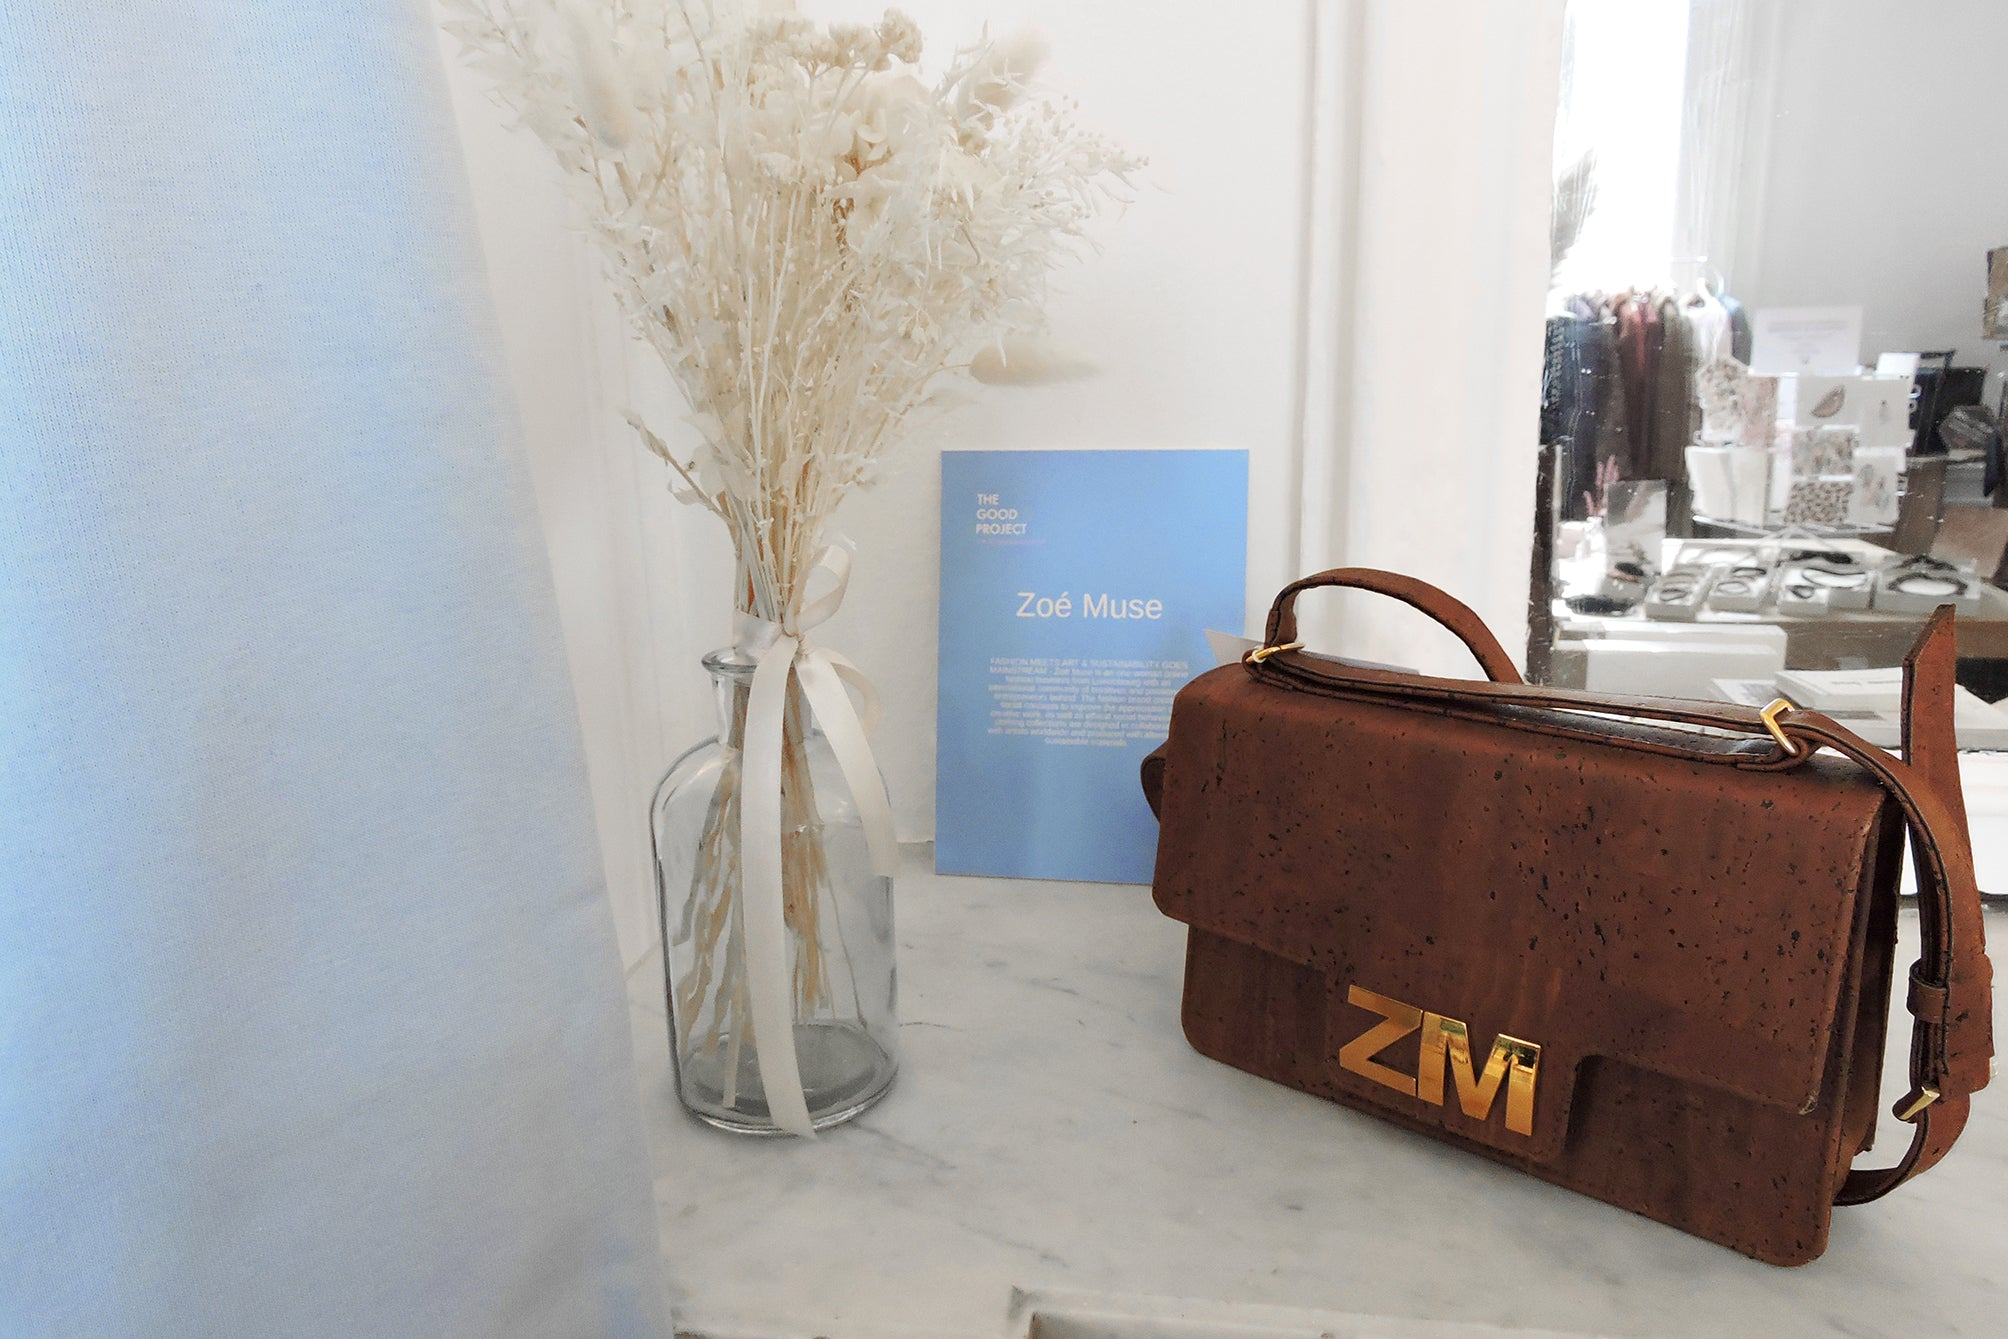 Zoé_Muse_Sustainable_Ethical_Fashion_Luxembourg_Paris_Organic_Cork_Bag_Recycled_PET_Textile